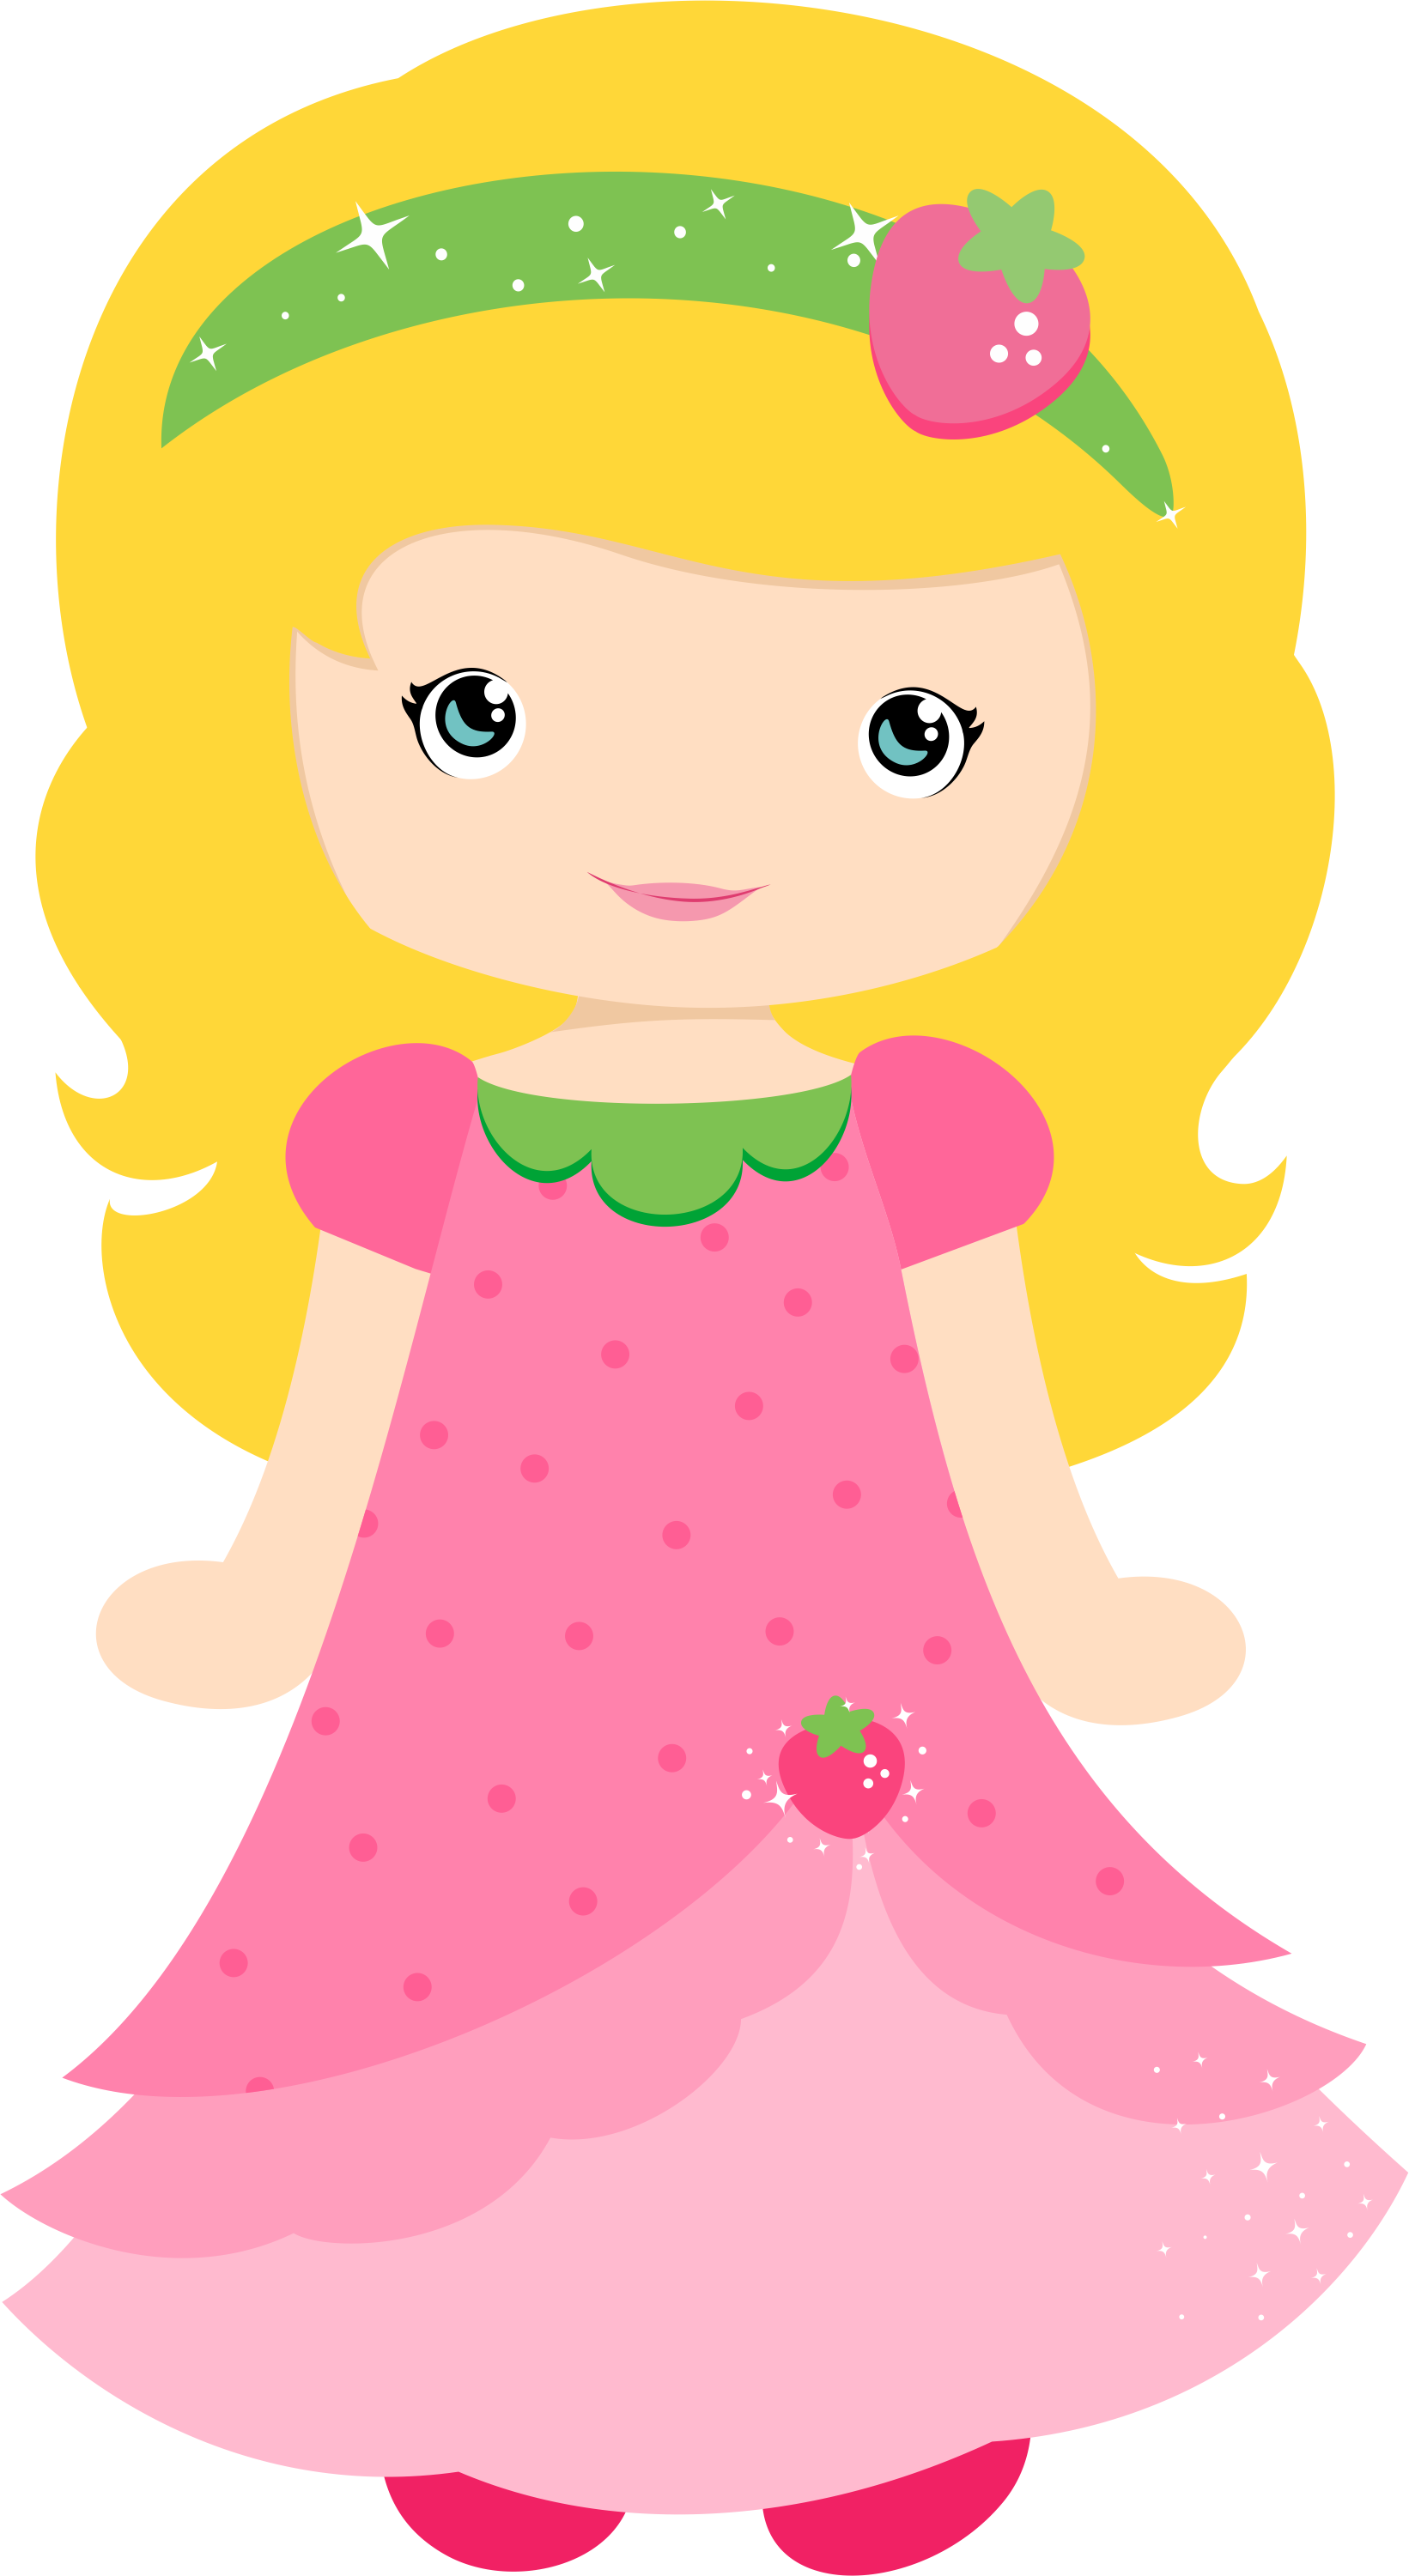 Strawberries clipart princess. Pin by obeidat elena